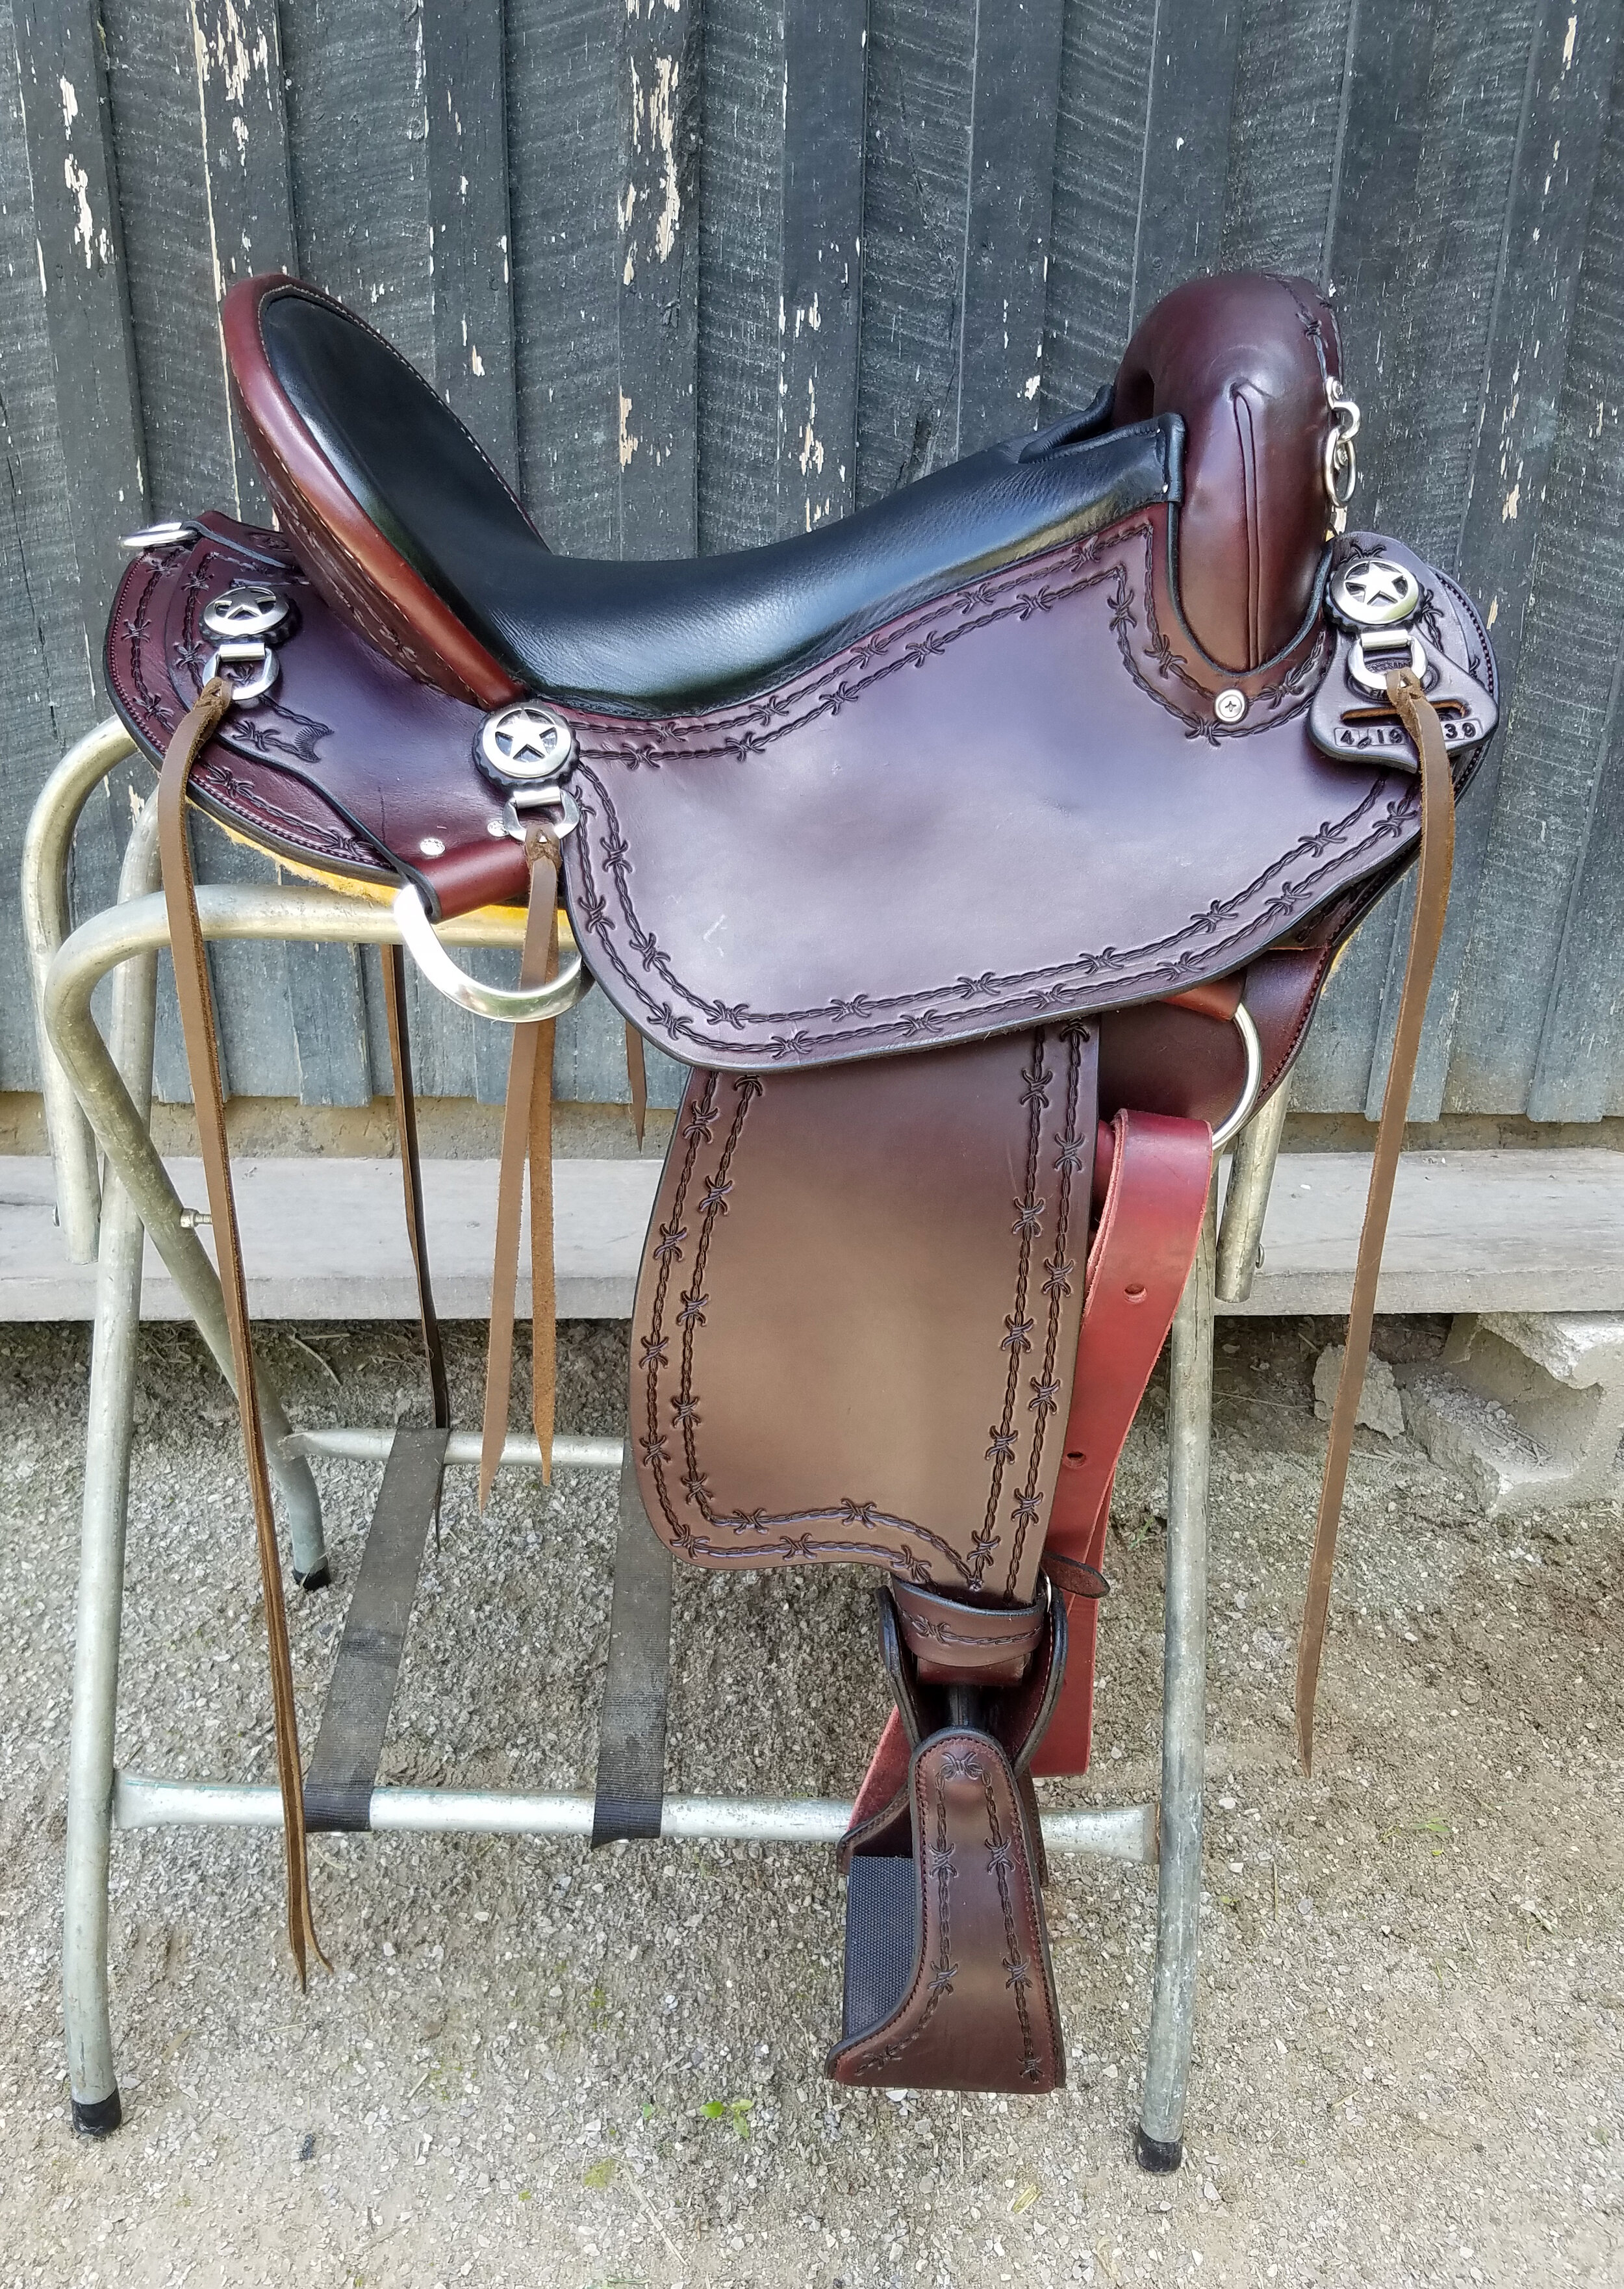 "Eli Miller Custom Endurance Saddle - This 16"" saddle is super lightweight and ultra comfortable. It features a suspended seat which is like riding on air. The Batie tree has 7 degree more flare to the bars, allowing your horse to move and collect easier. The stirrup bars are ground smooth which enables your leg to move freely, much less restriction than many western saddles. Stirrup turners ease the pressure on your knees on those long, hard rides. Padded comfort stirrups complete the package."